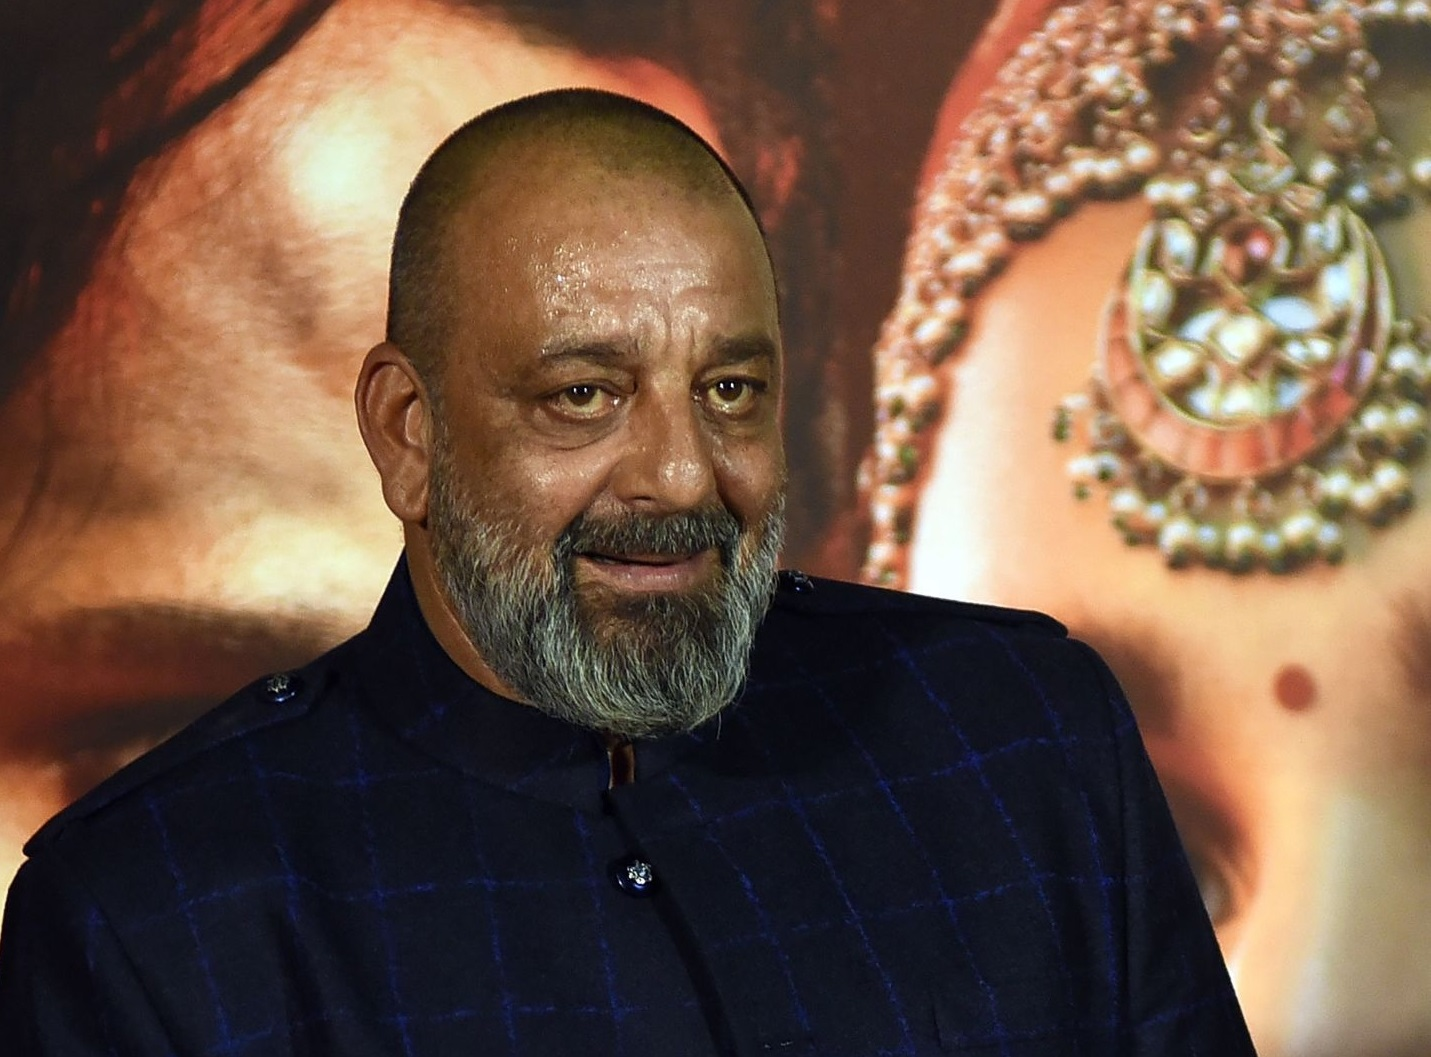 Sanjay Dutt ((Photo by SUJIT JAISWAL/AFP via Getty Images)